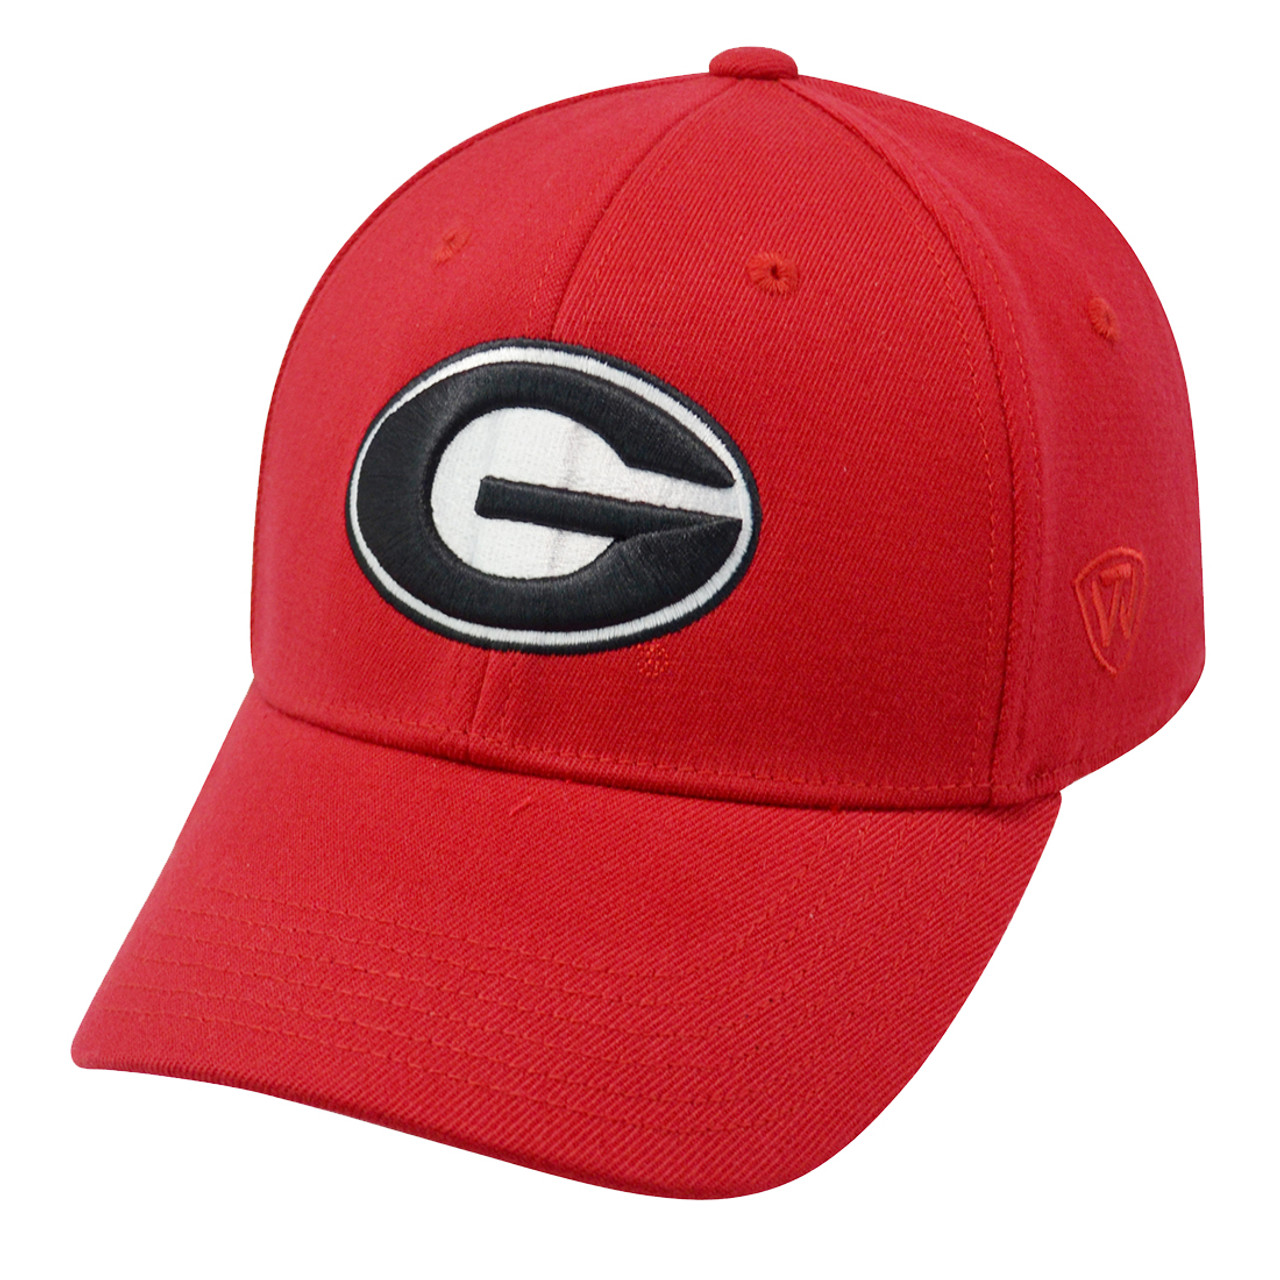 pretty nice fd8ad 1c7be Top of the World NCAA Georgia Bulldogs UGA Team Color Red  Premium   Collection Memory Fit Hat - Trenz Shirt Company